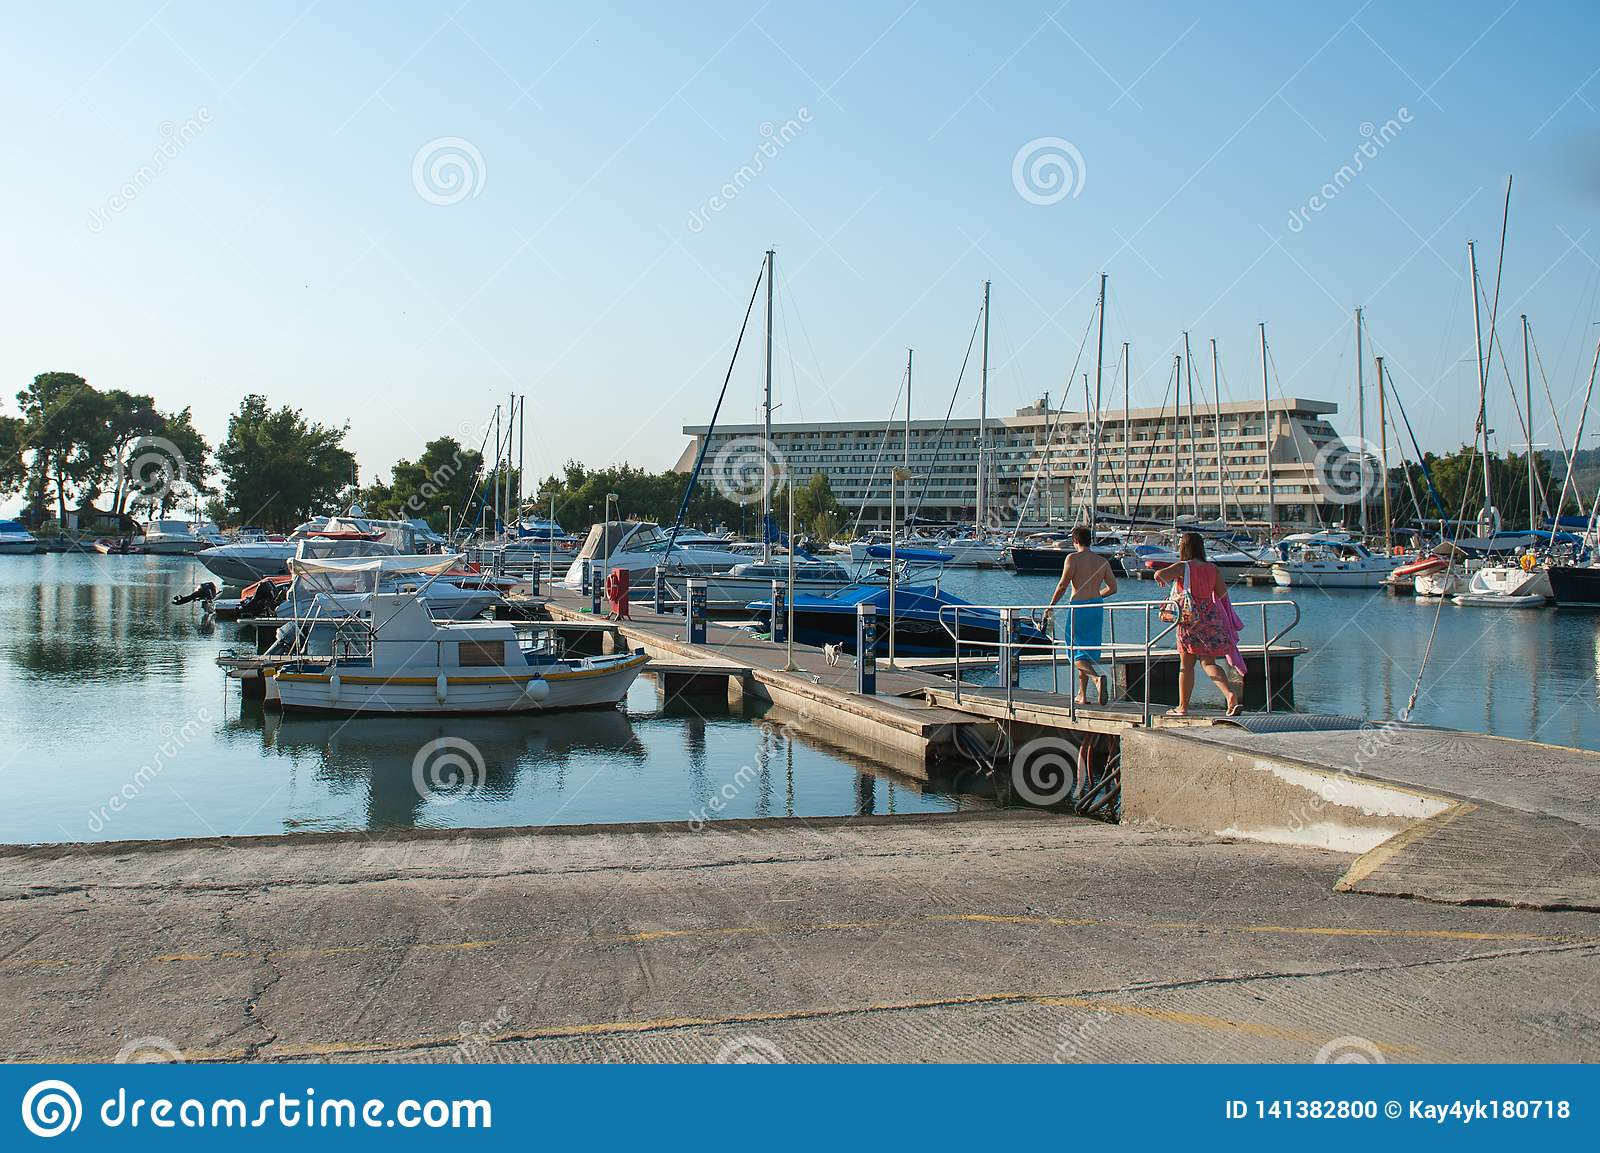 People go to rent a yacht, boat. Rental vehicles for travel and recreation